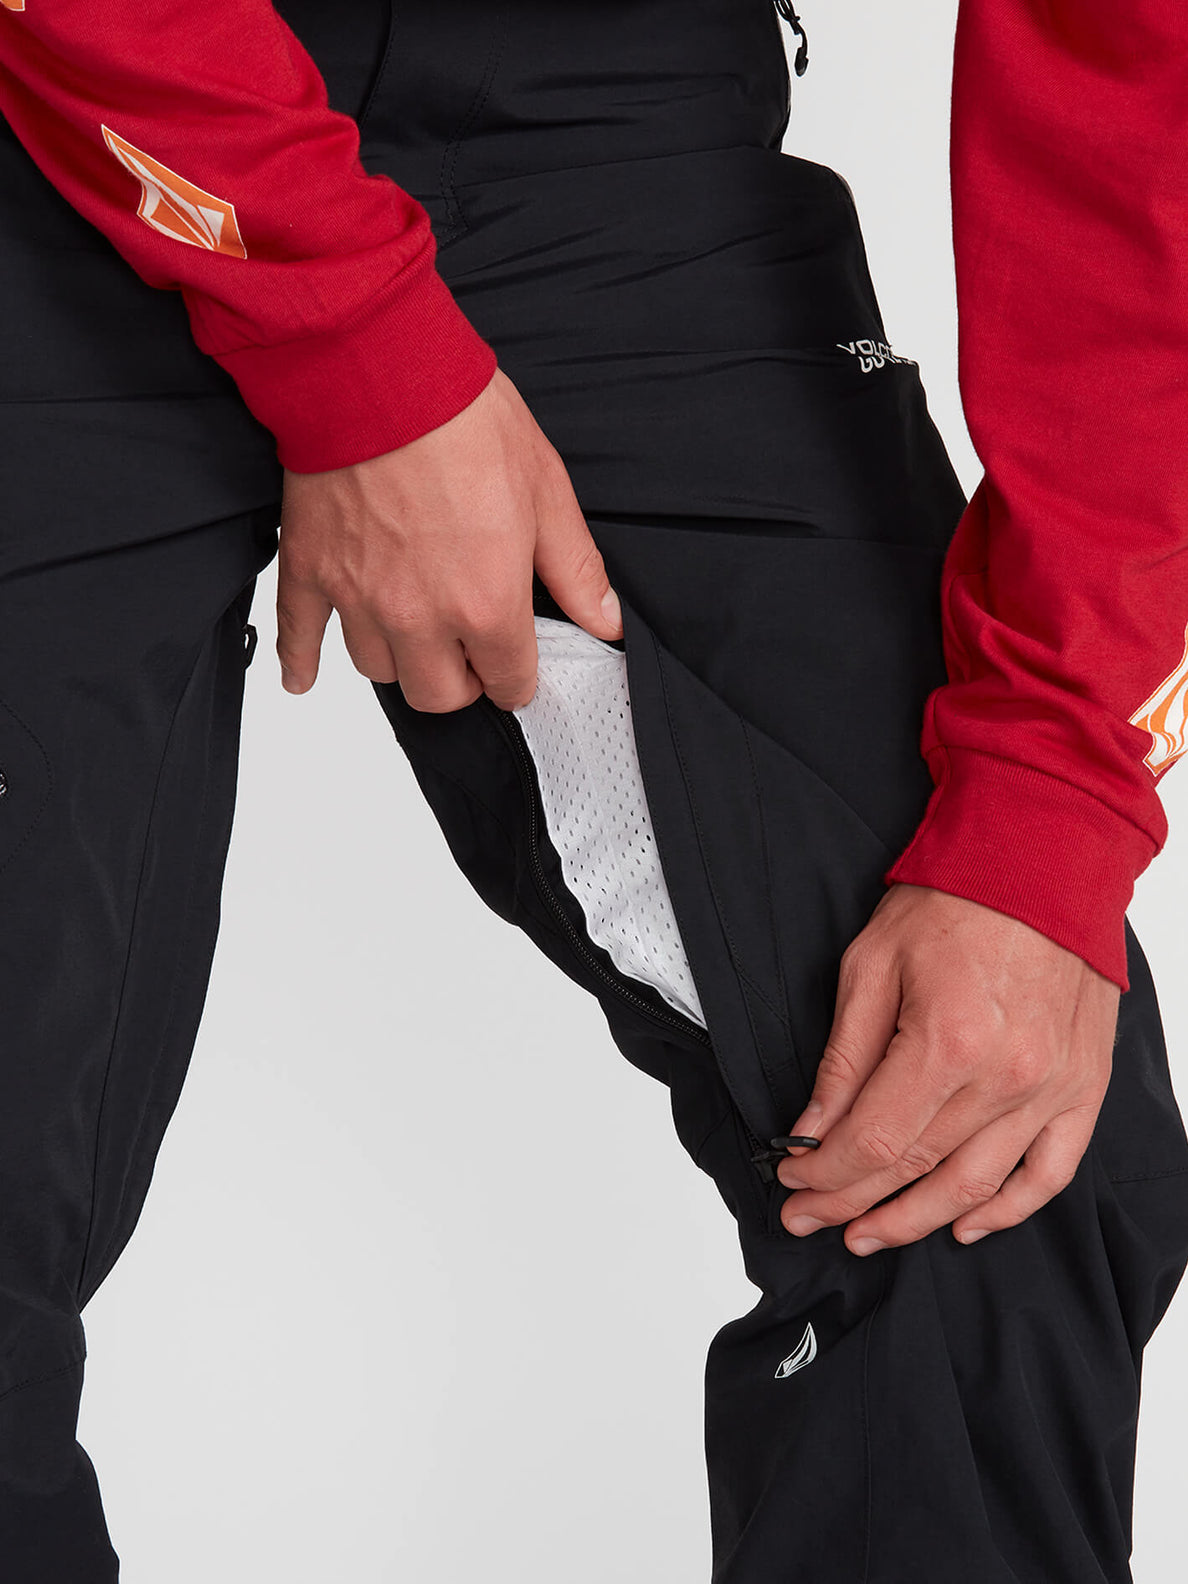 L Gore-Tex Pants - Black (G1351904_BLK) [5]